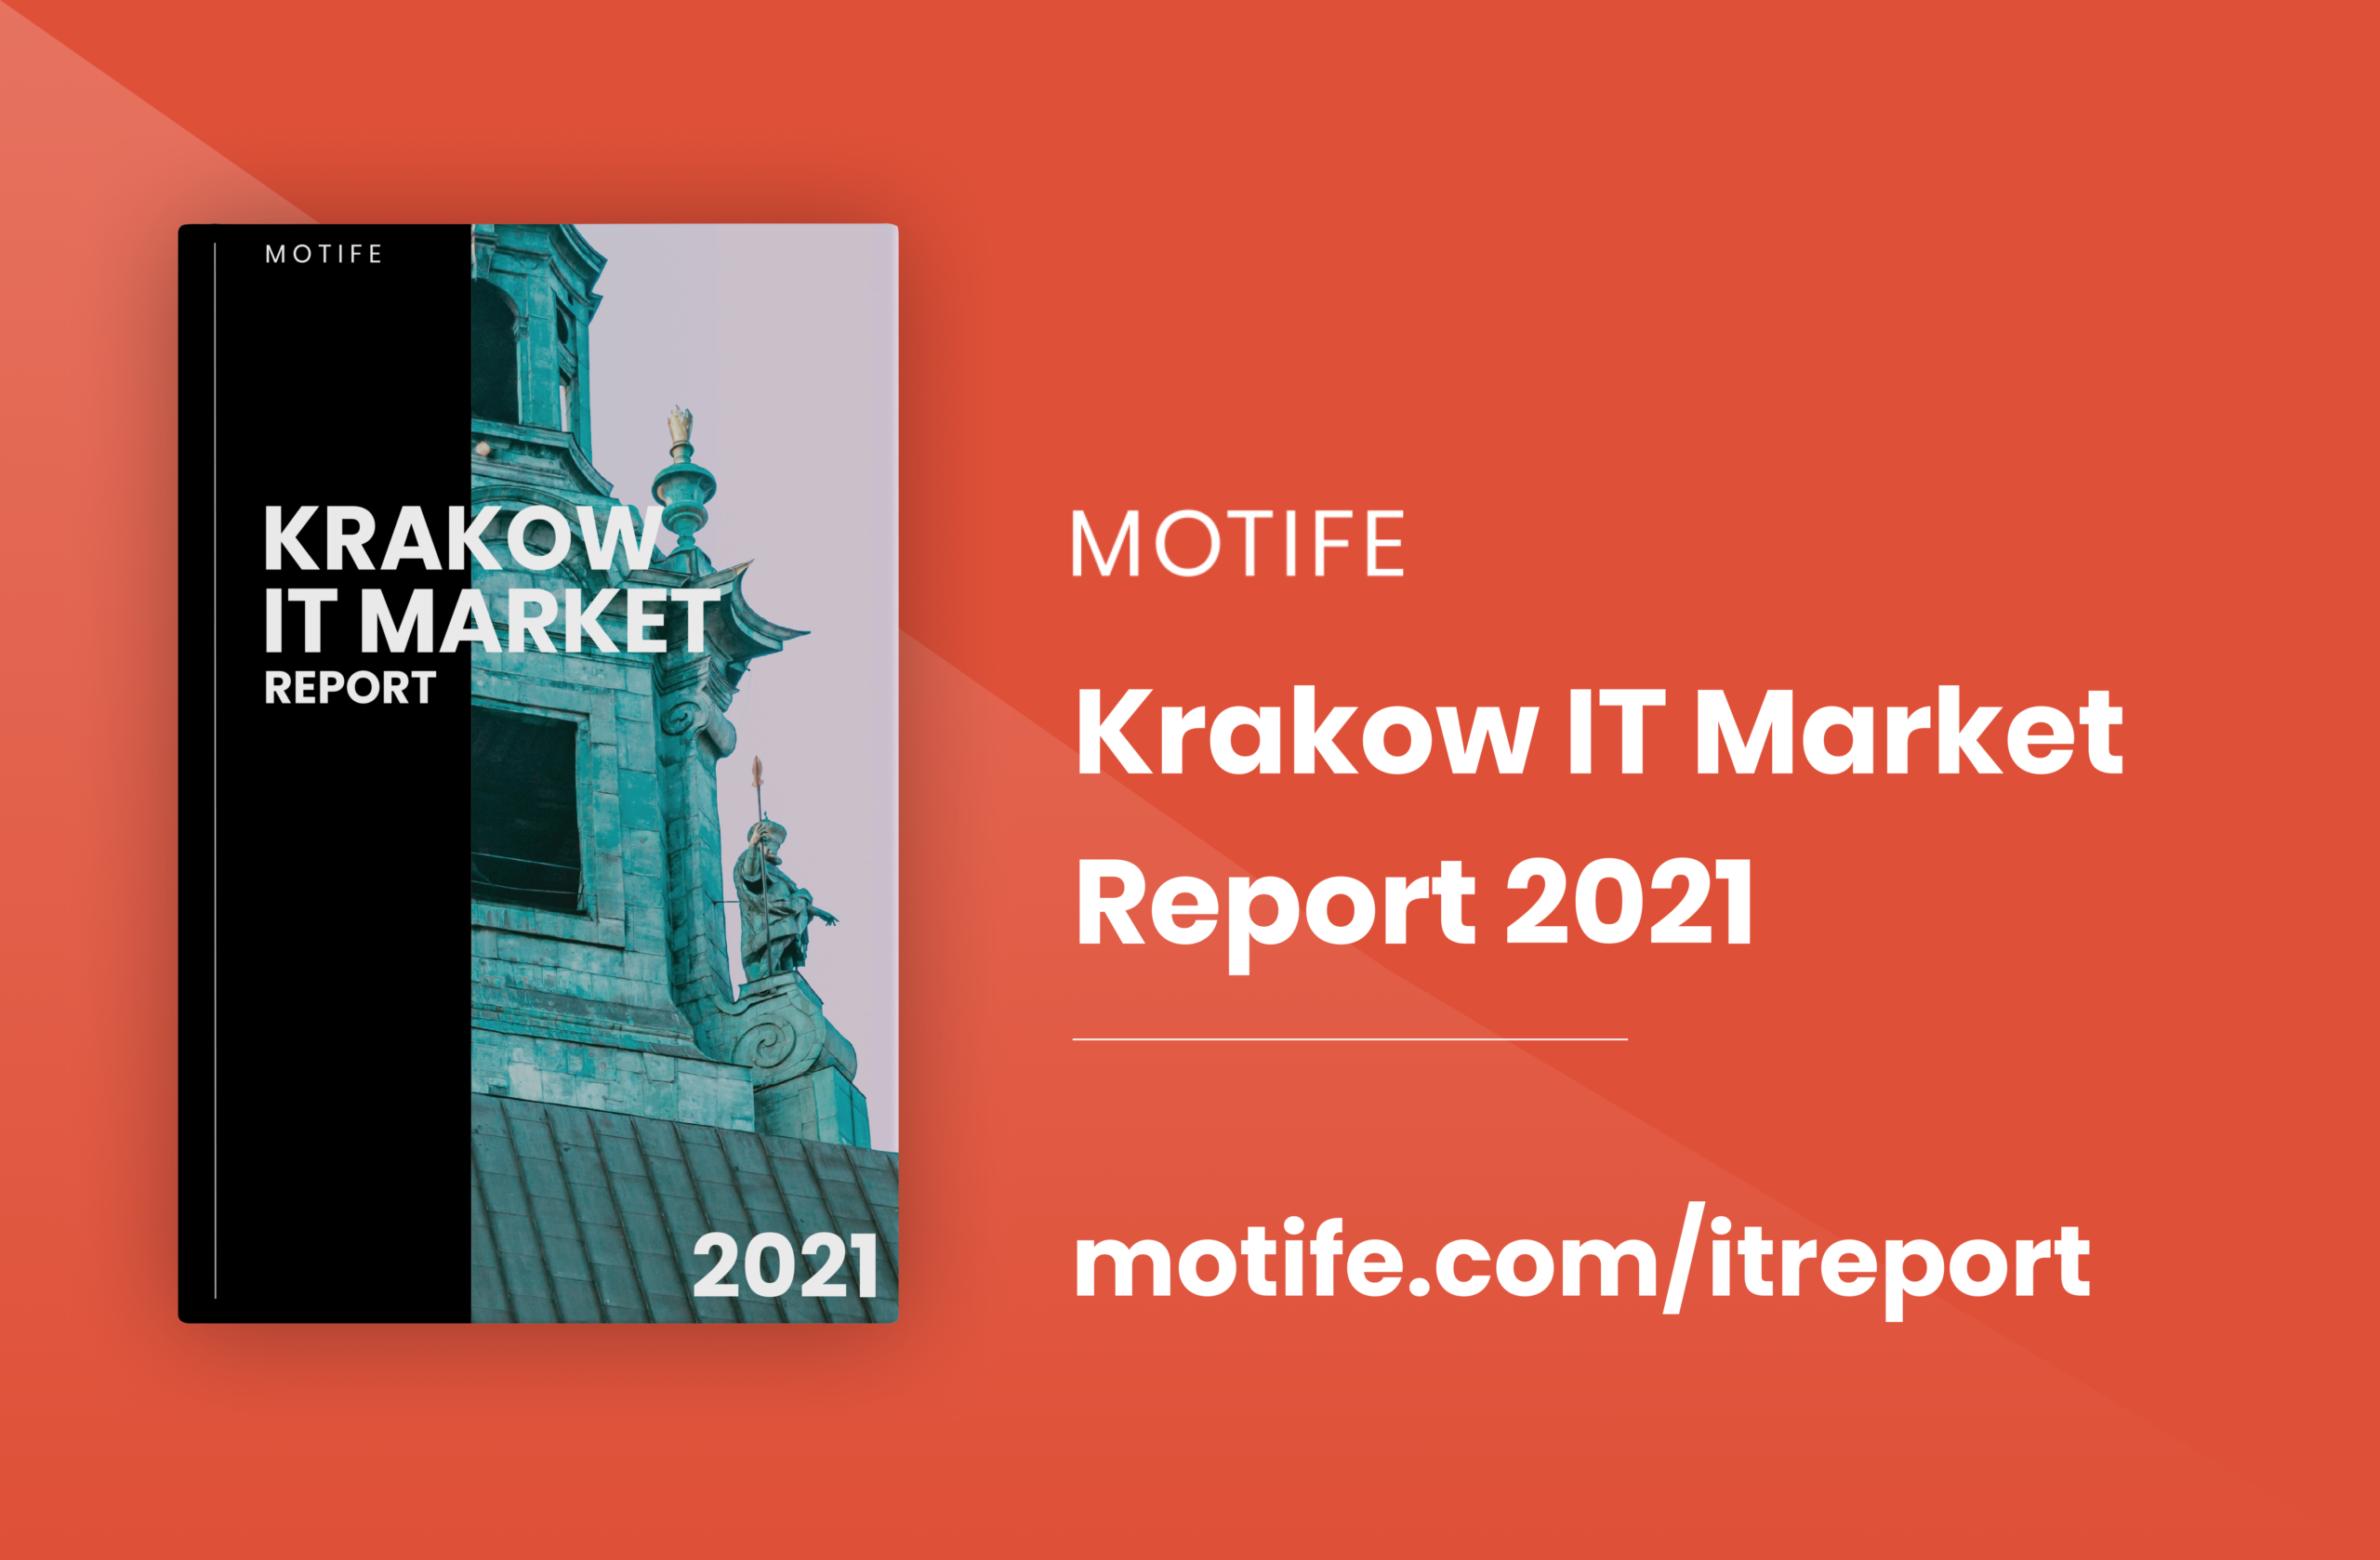 , MOTIFE: KICK-START YOUR SOFTWARE TEAM IN POLAND